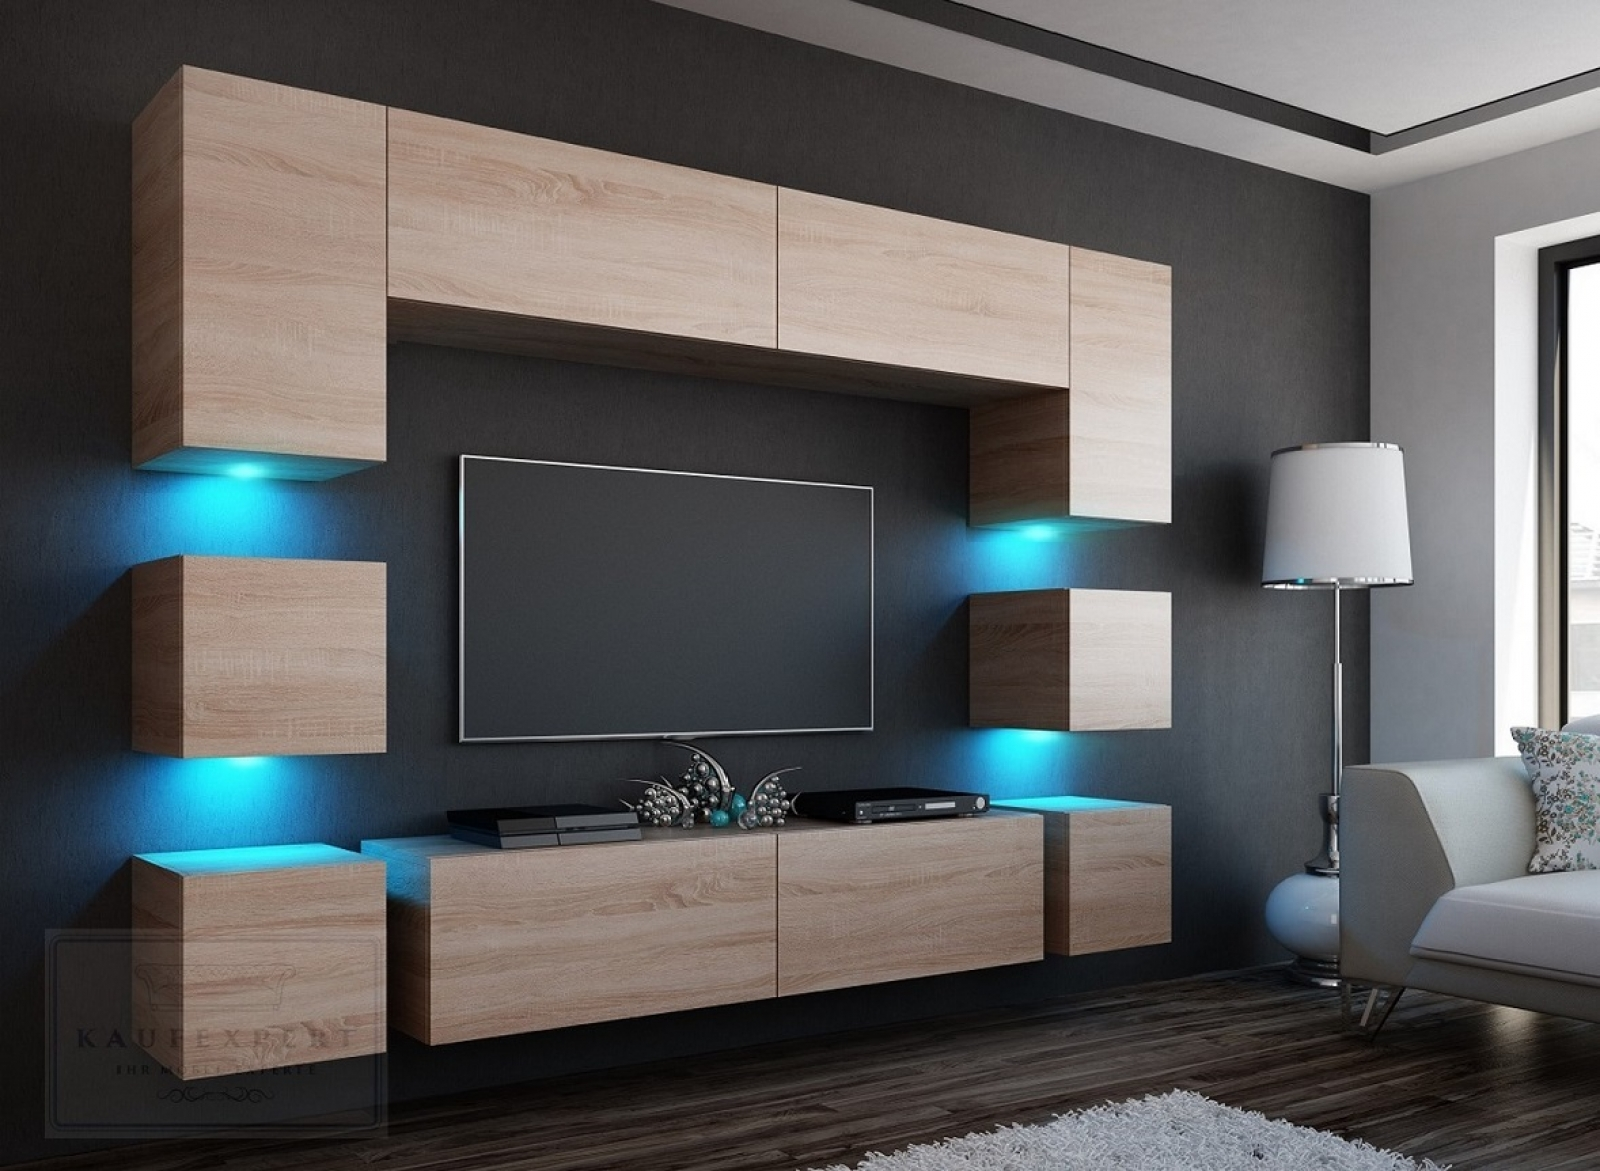 kaufexpert wohnwand quadro sonoma eiche matt 228 cm mediawand medienwand design modern led. Black Bedroom Furniture Sets. Home Design Ideas